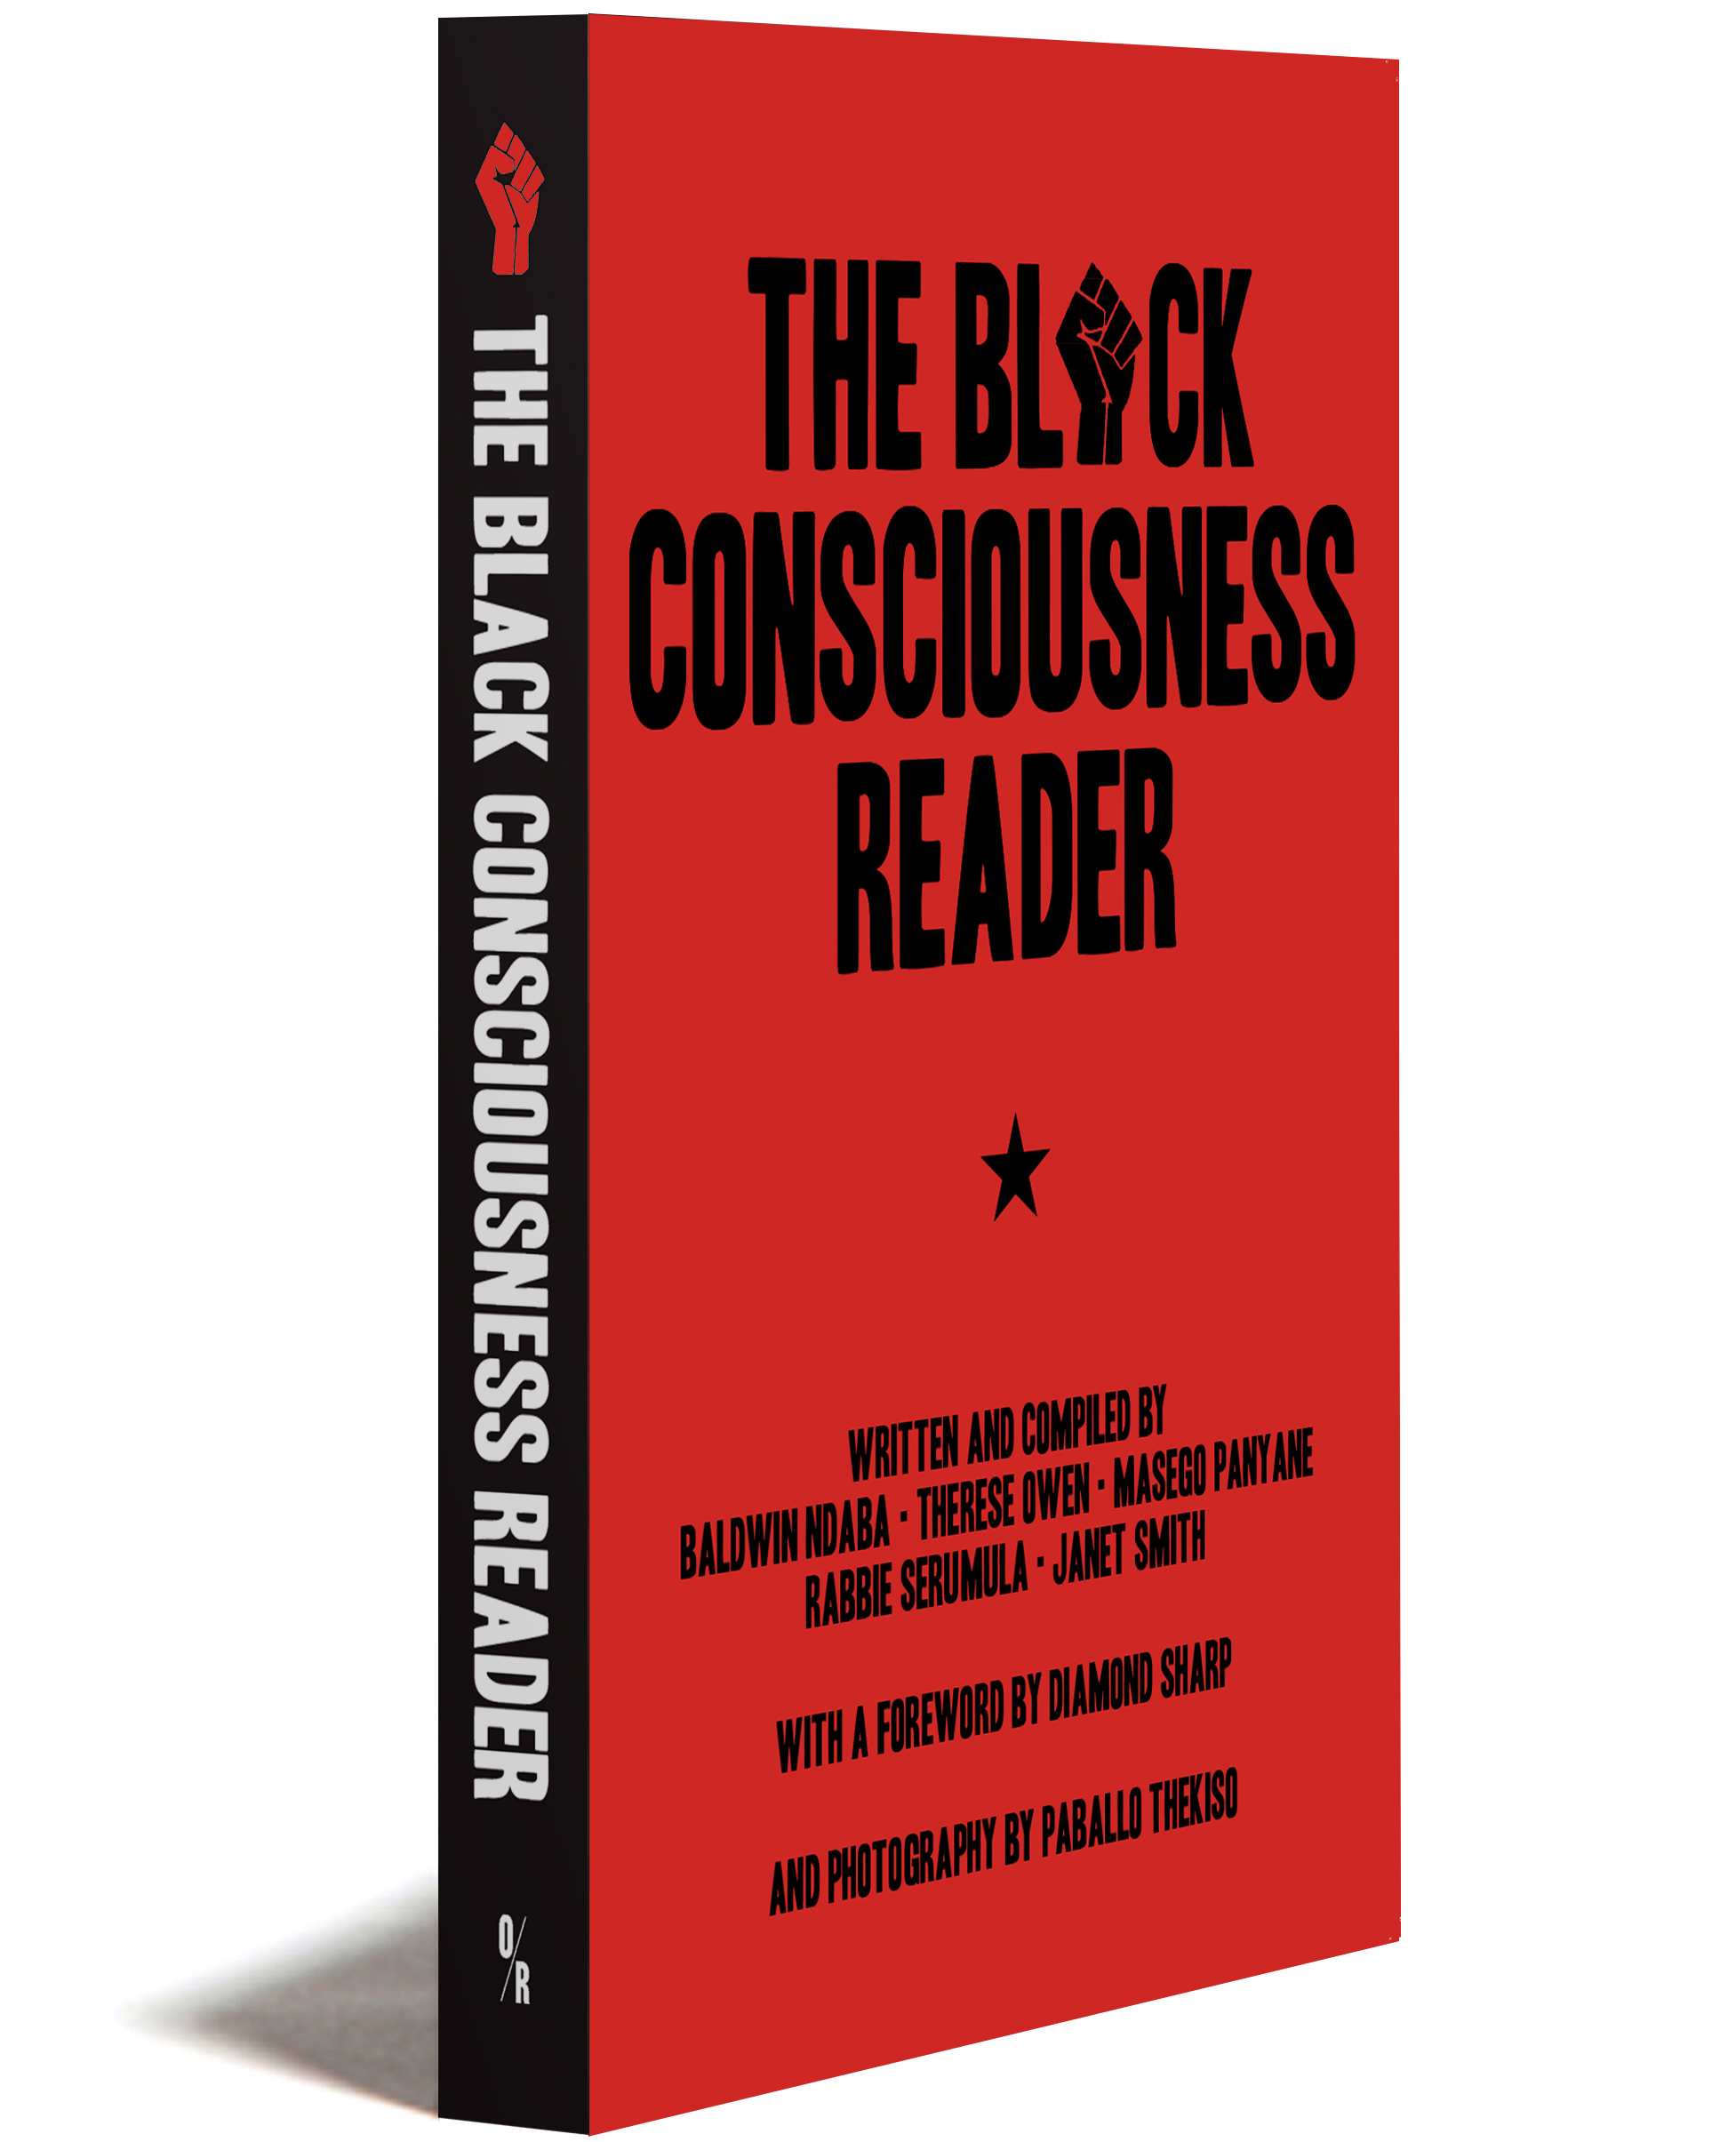 black consciousness reader cover